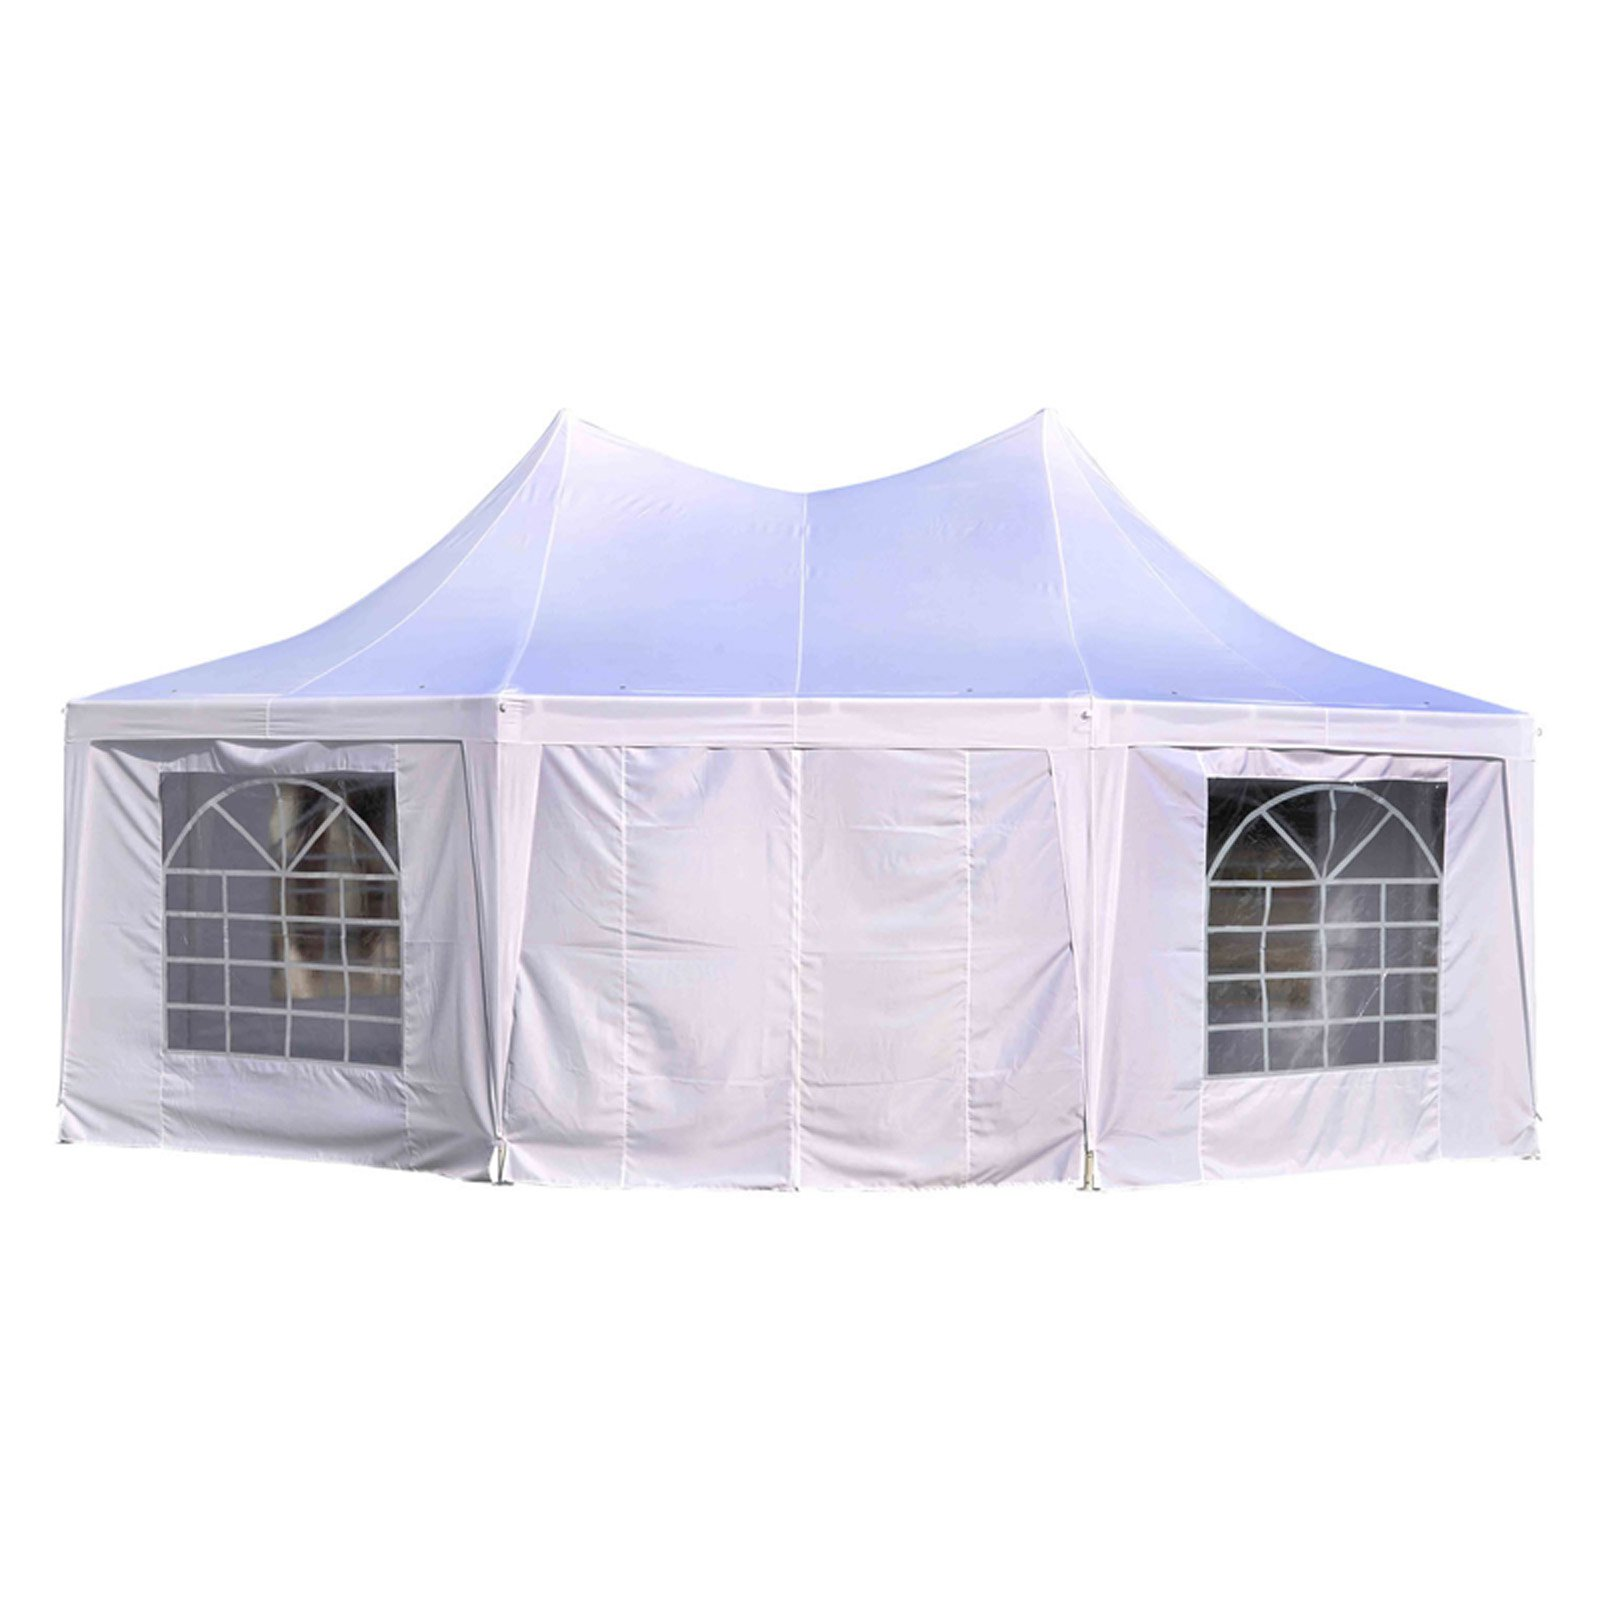 Outsunny 22 x 16 ft. Large Octagon Party Gazebo Canopy Tent by Aosom LLC